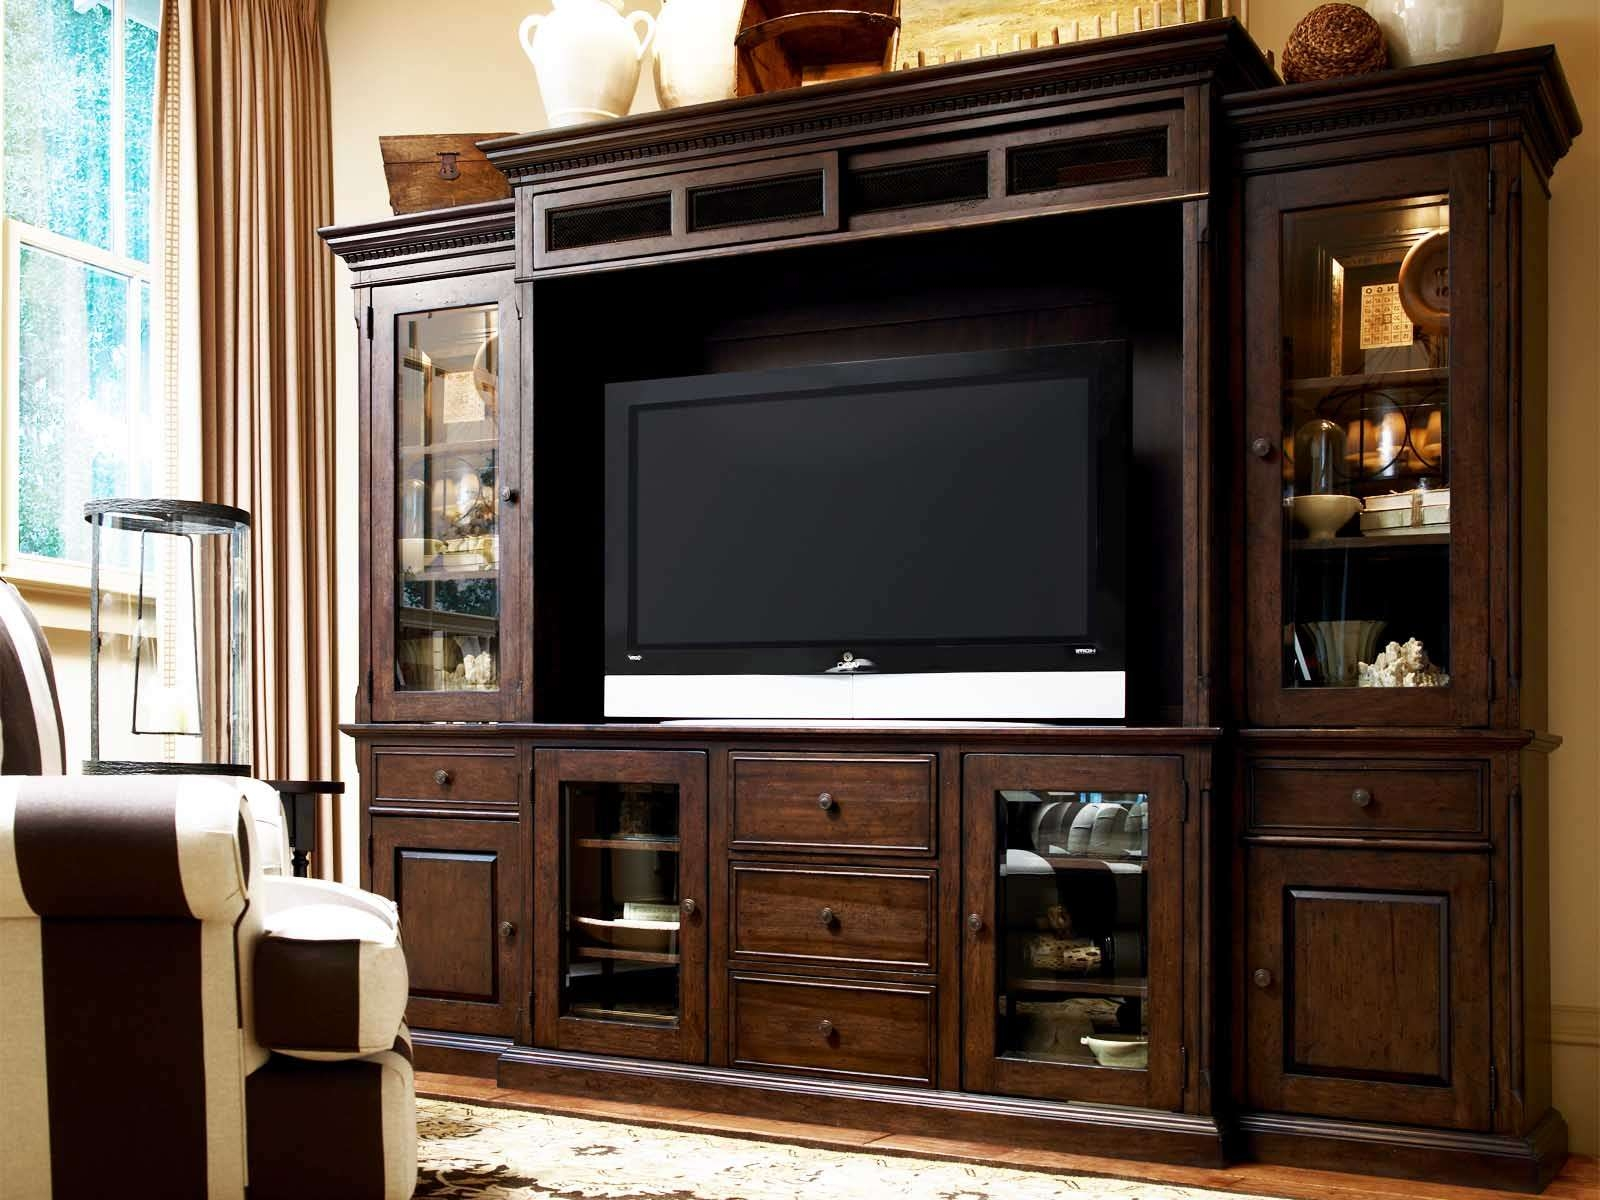 Dark Brown Wooden Tv Cabinet With Doors And Drawers On The Floor With Regard To Wooden Tv Cabinets With Glass Doors (View 5 of 20)